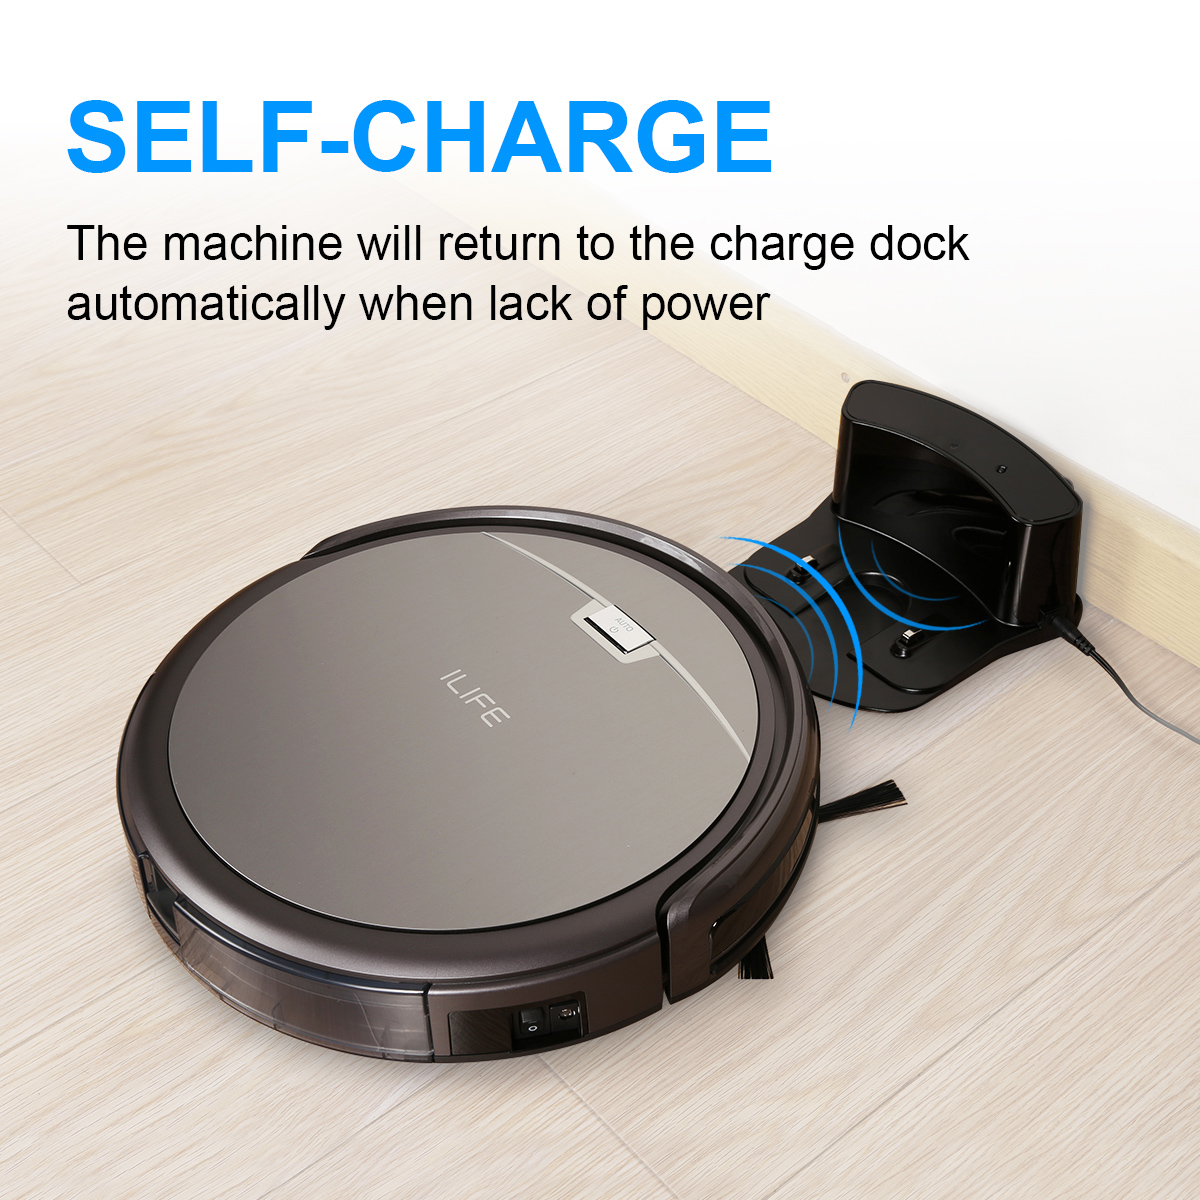 ILIFE A4S Robotic Vacuum Cleane Smart Auto Robot Floor Cleaning Sweeper for Pets Hard Carpets,hard floor